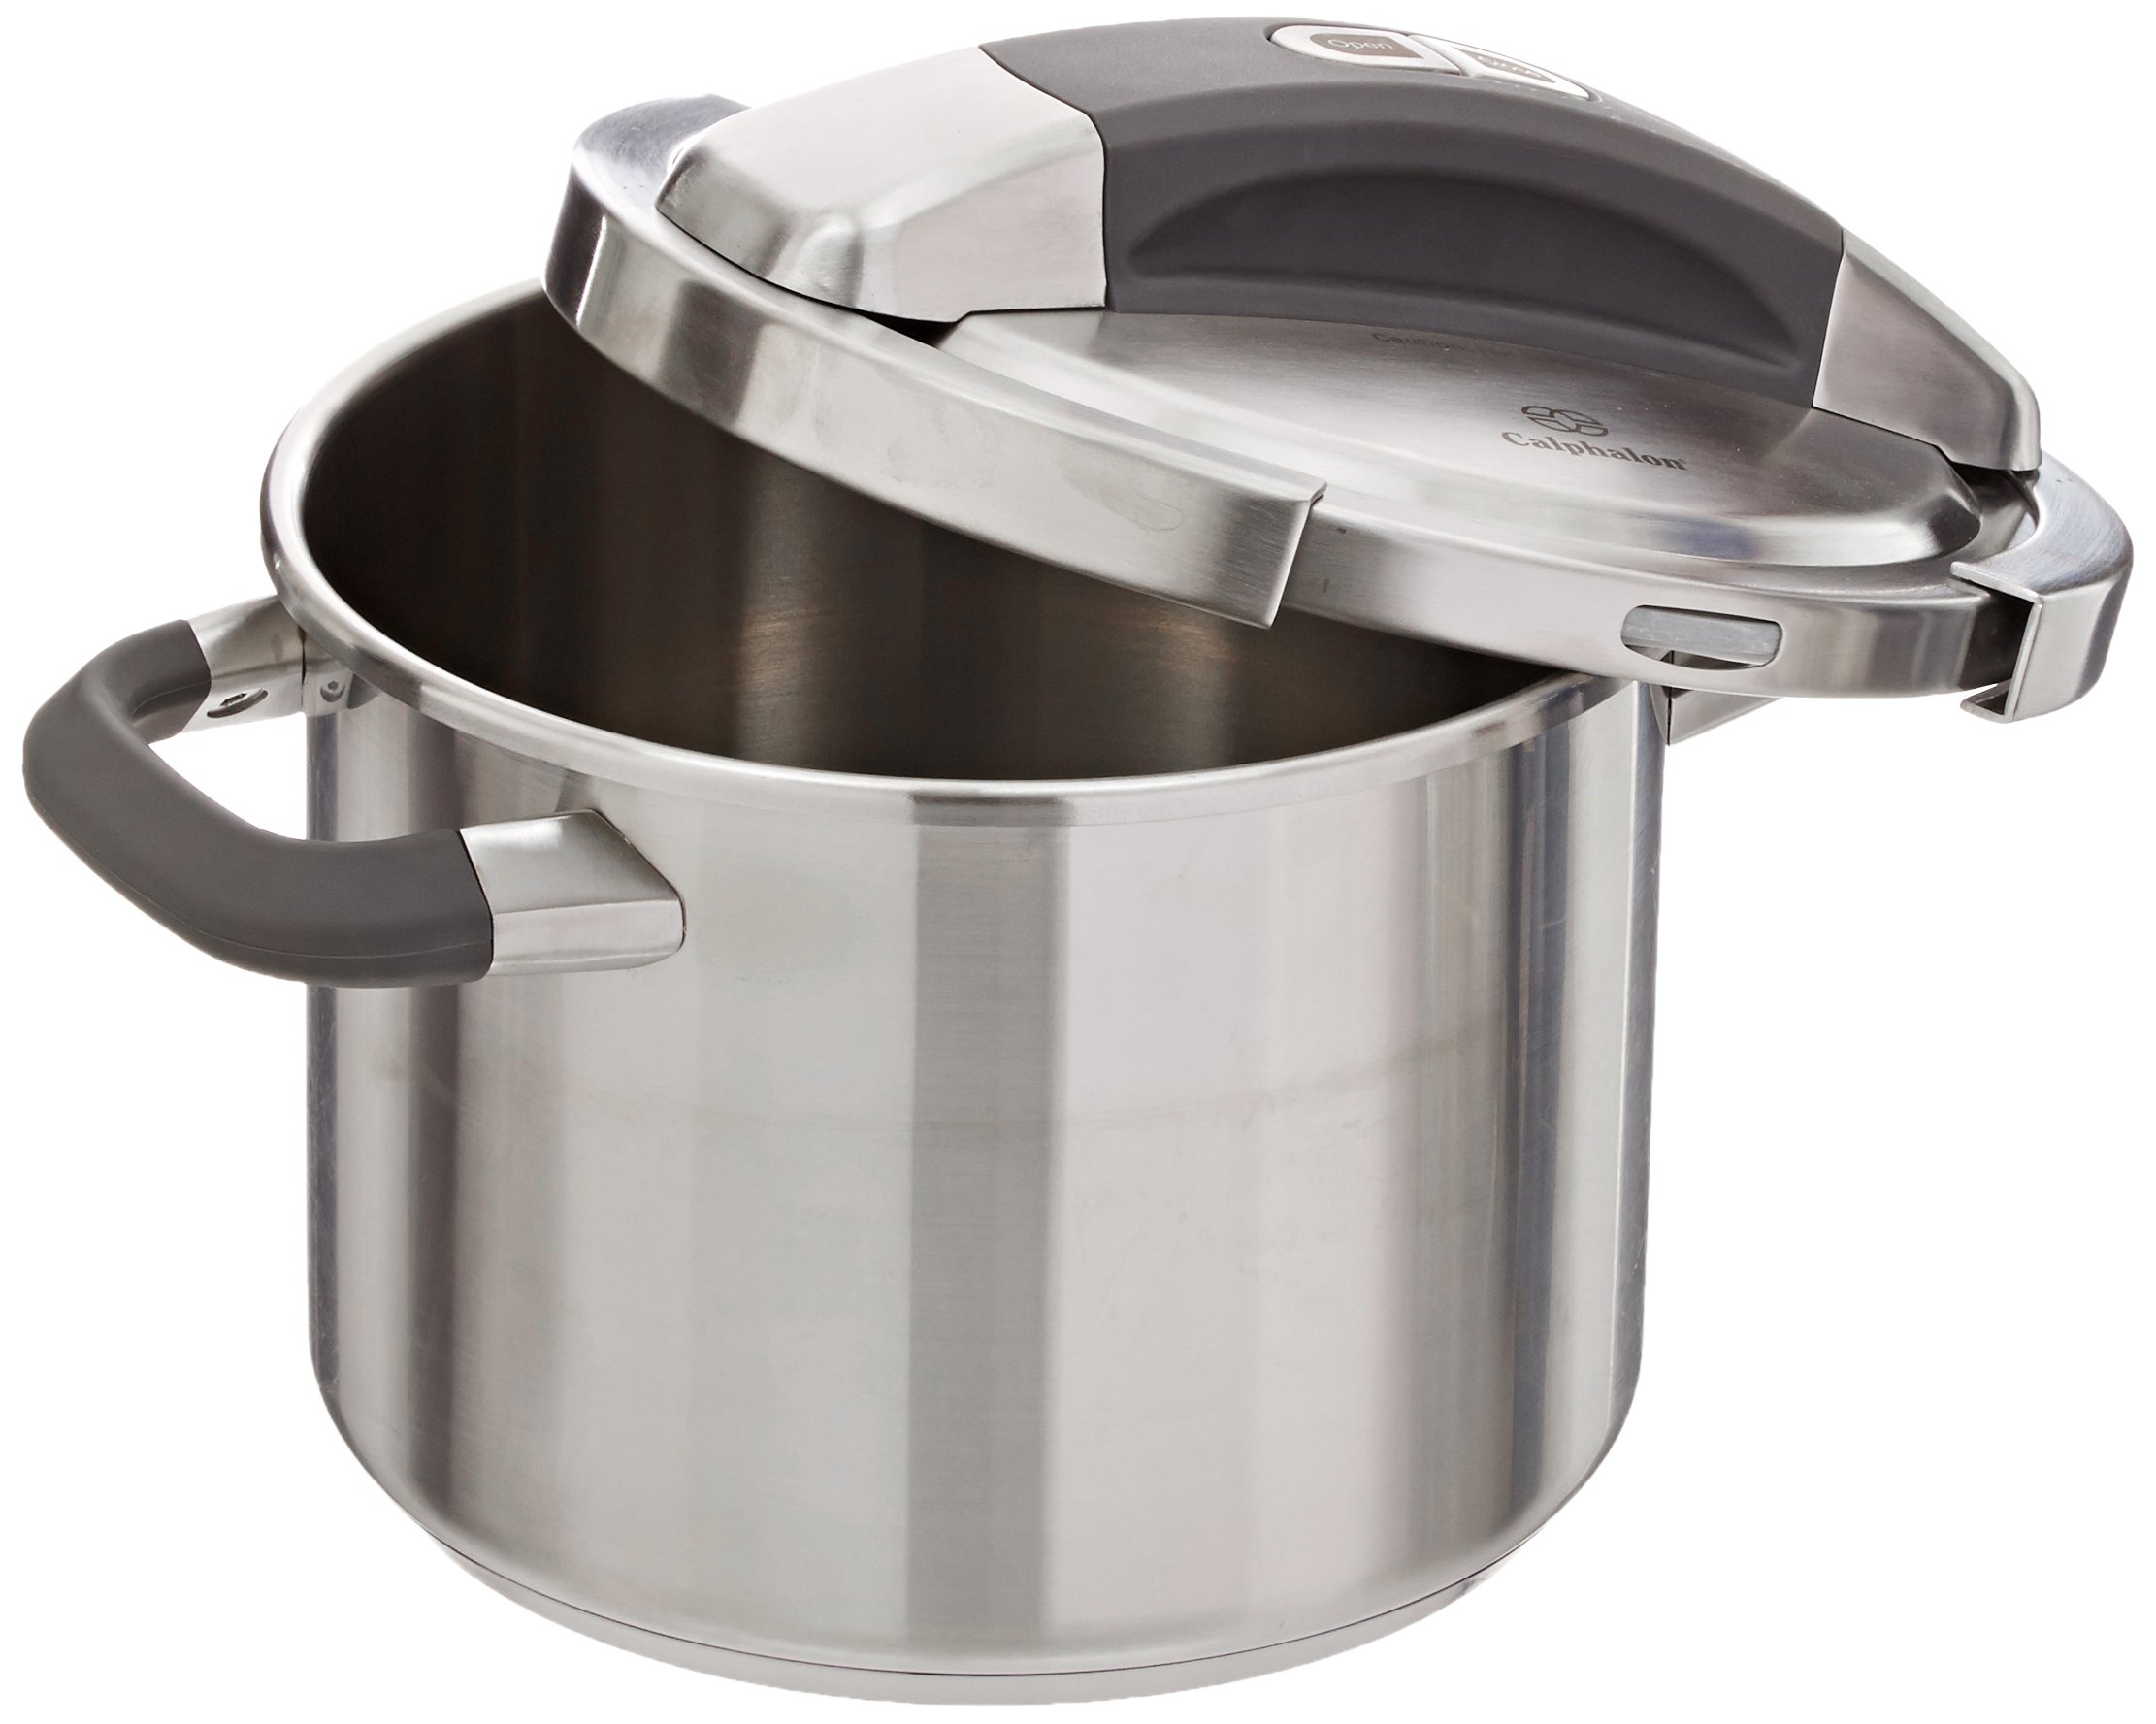 Calphalon Stainless Steel Pressure Cooker, 6-quart by Calphalon (Image #2)